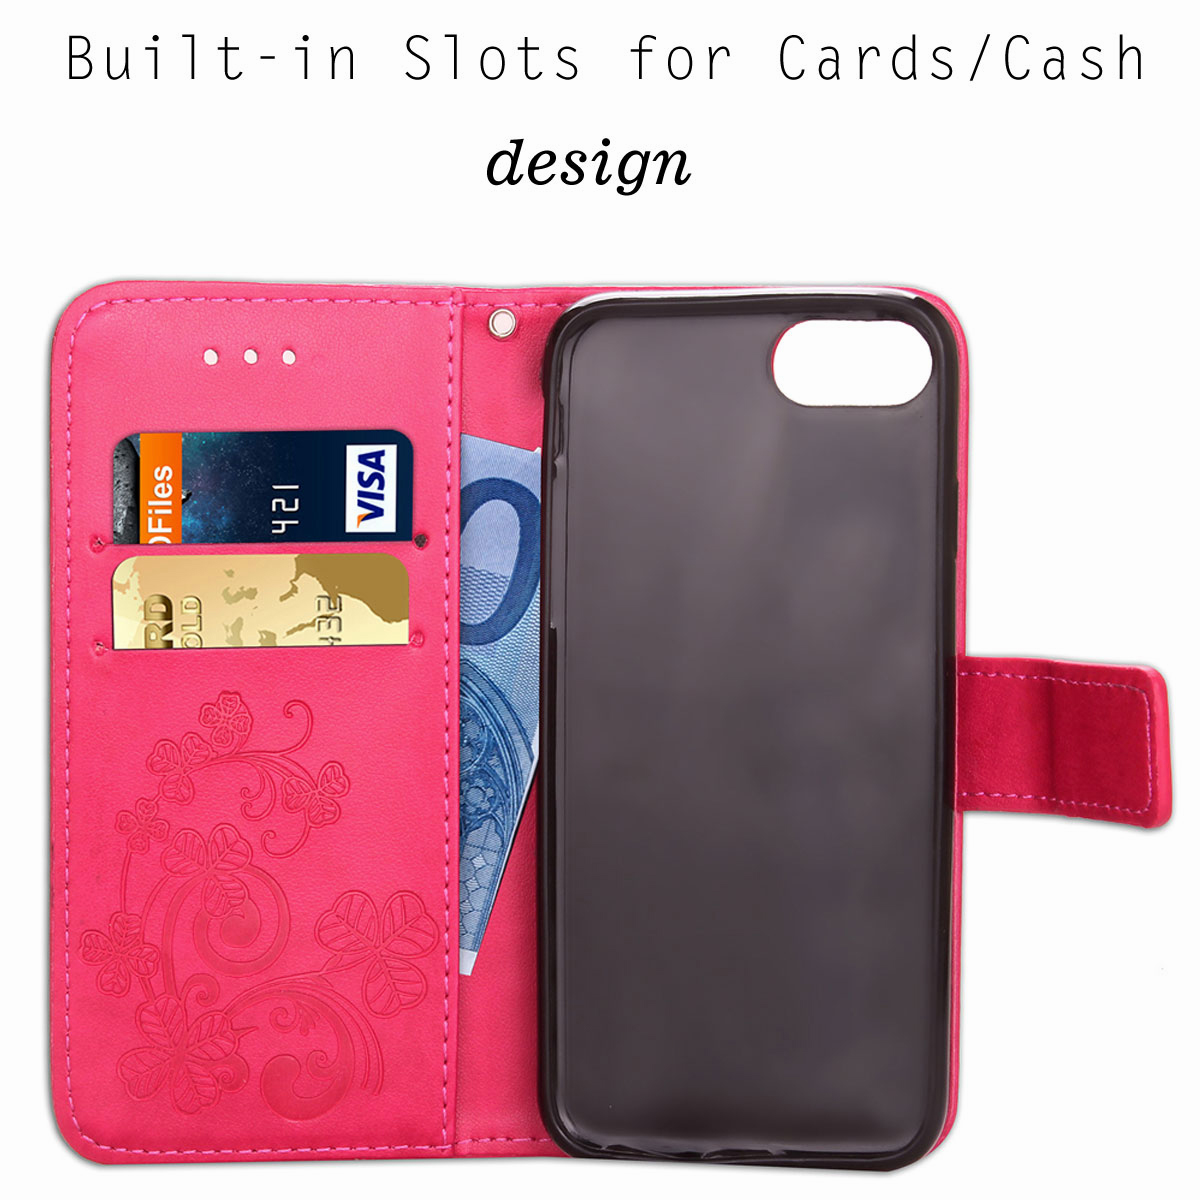 For-Apple-iPhone-Phones-Soft-Leather-Magnetic-Wallet-Card-Holder-Sim-Case-Cover thumbnail 24